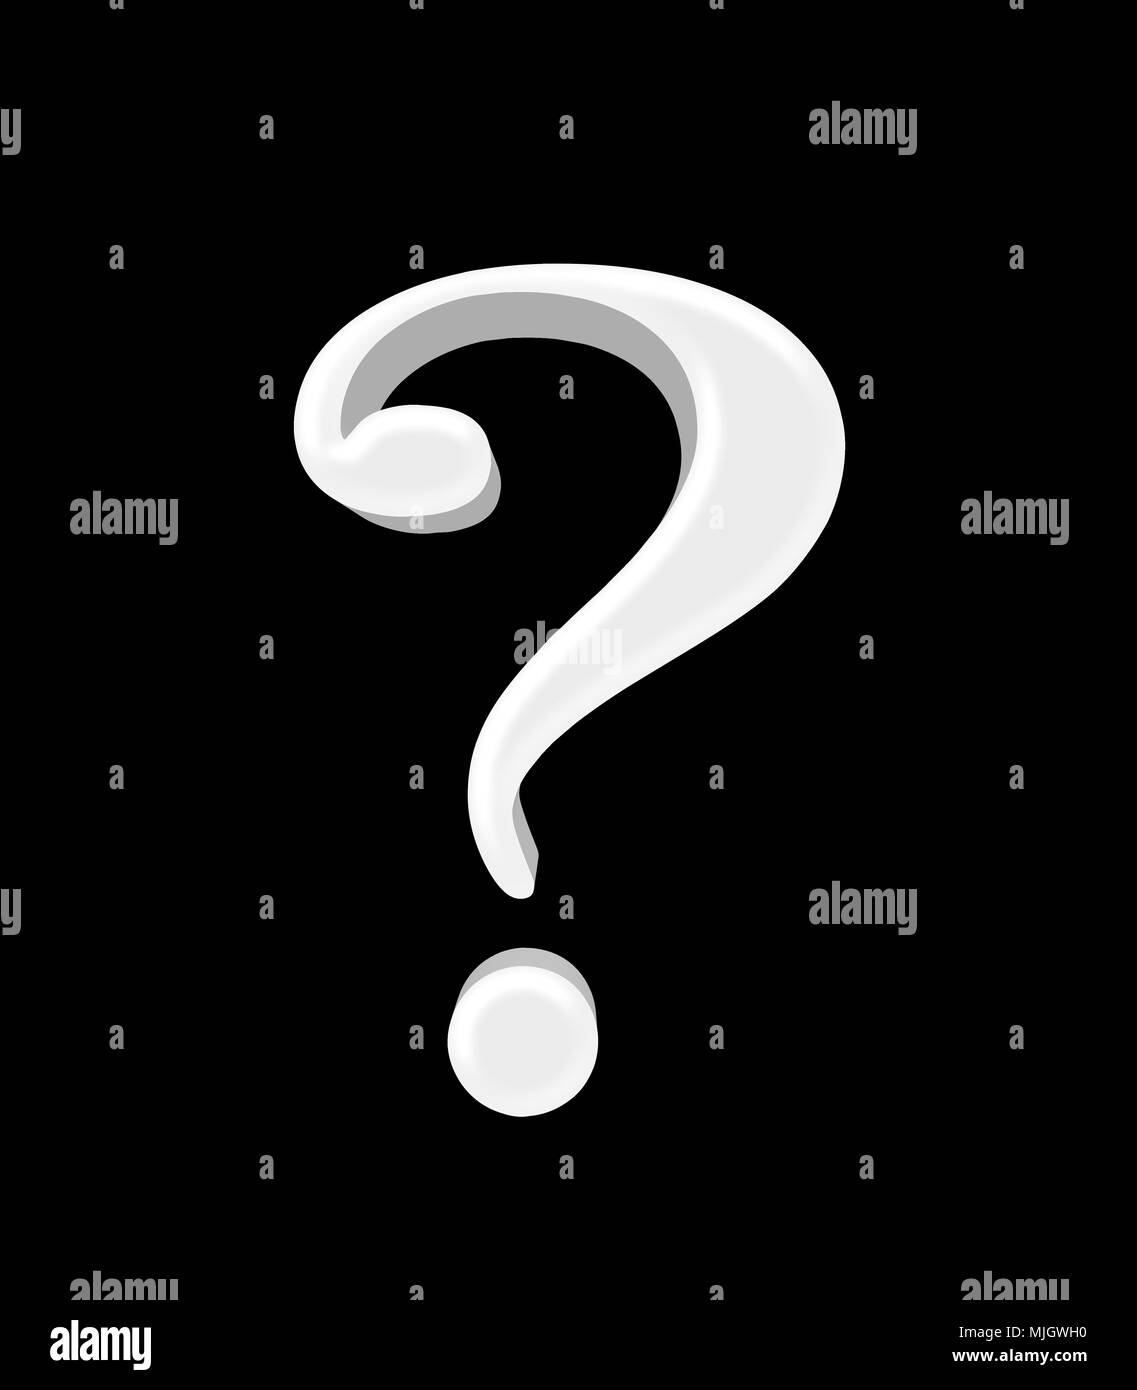 Stock Illustration - Large Three Dimensional White Question Mark , 3D Illustration, Isolated against the Black Background. - Stock Image